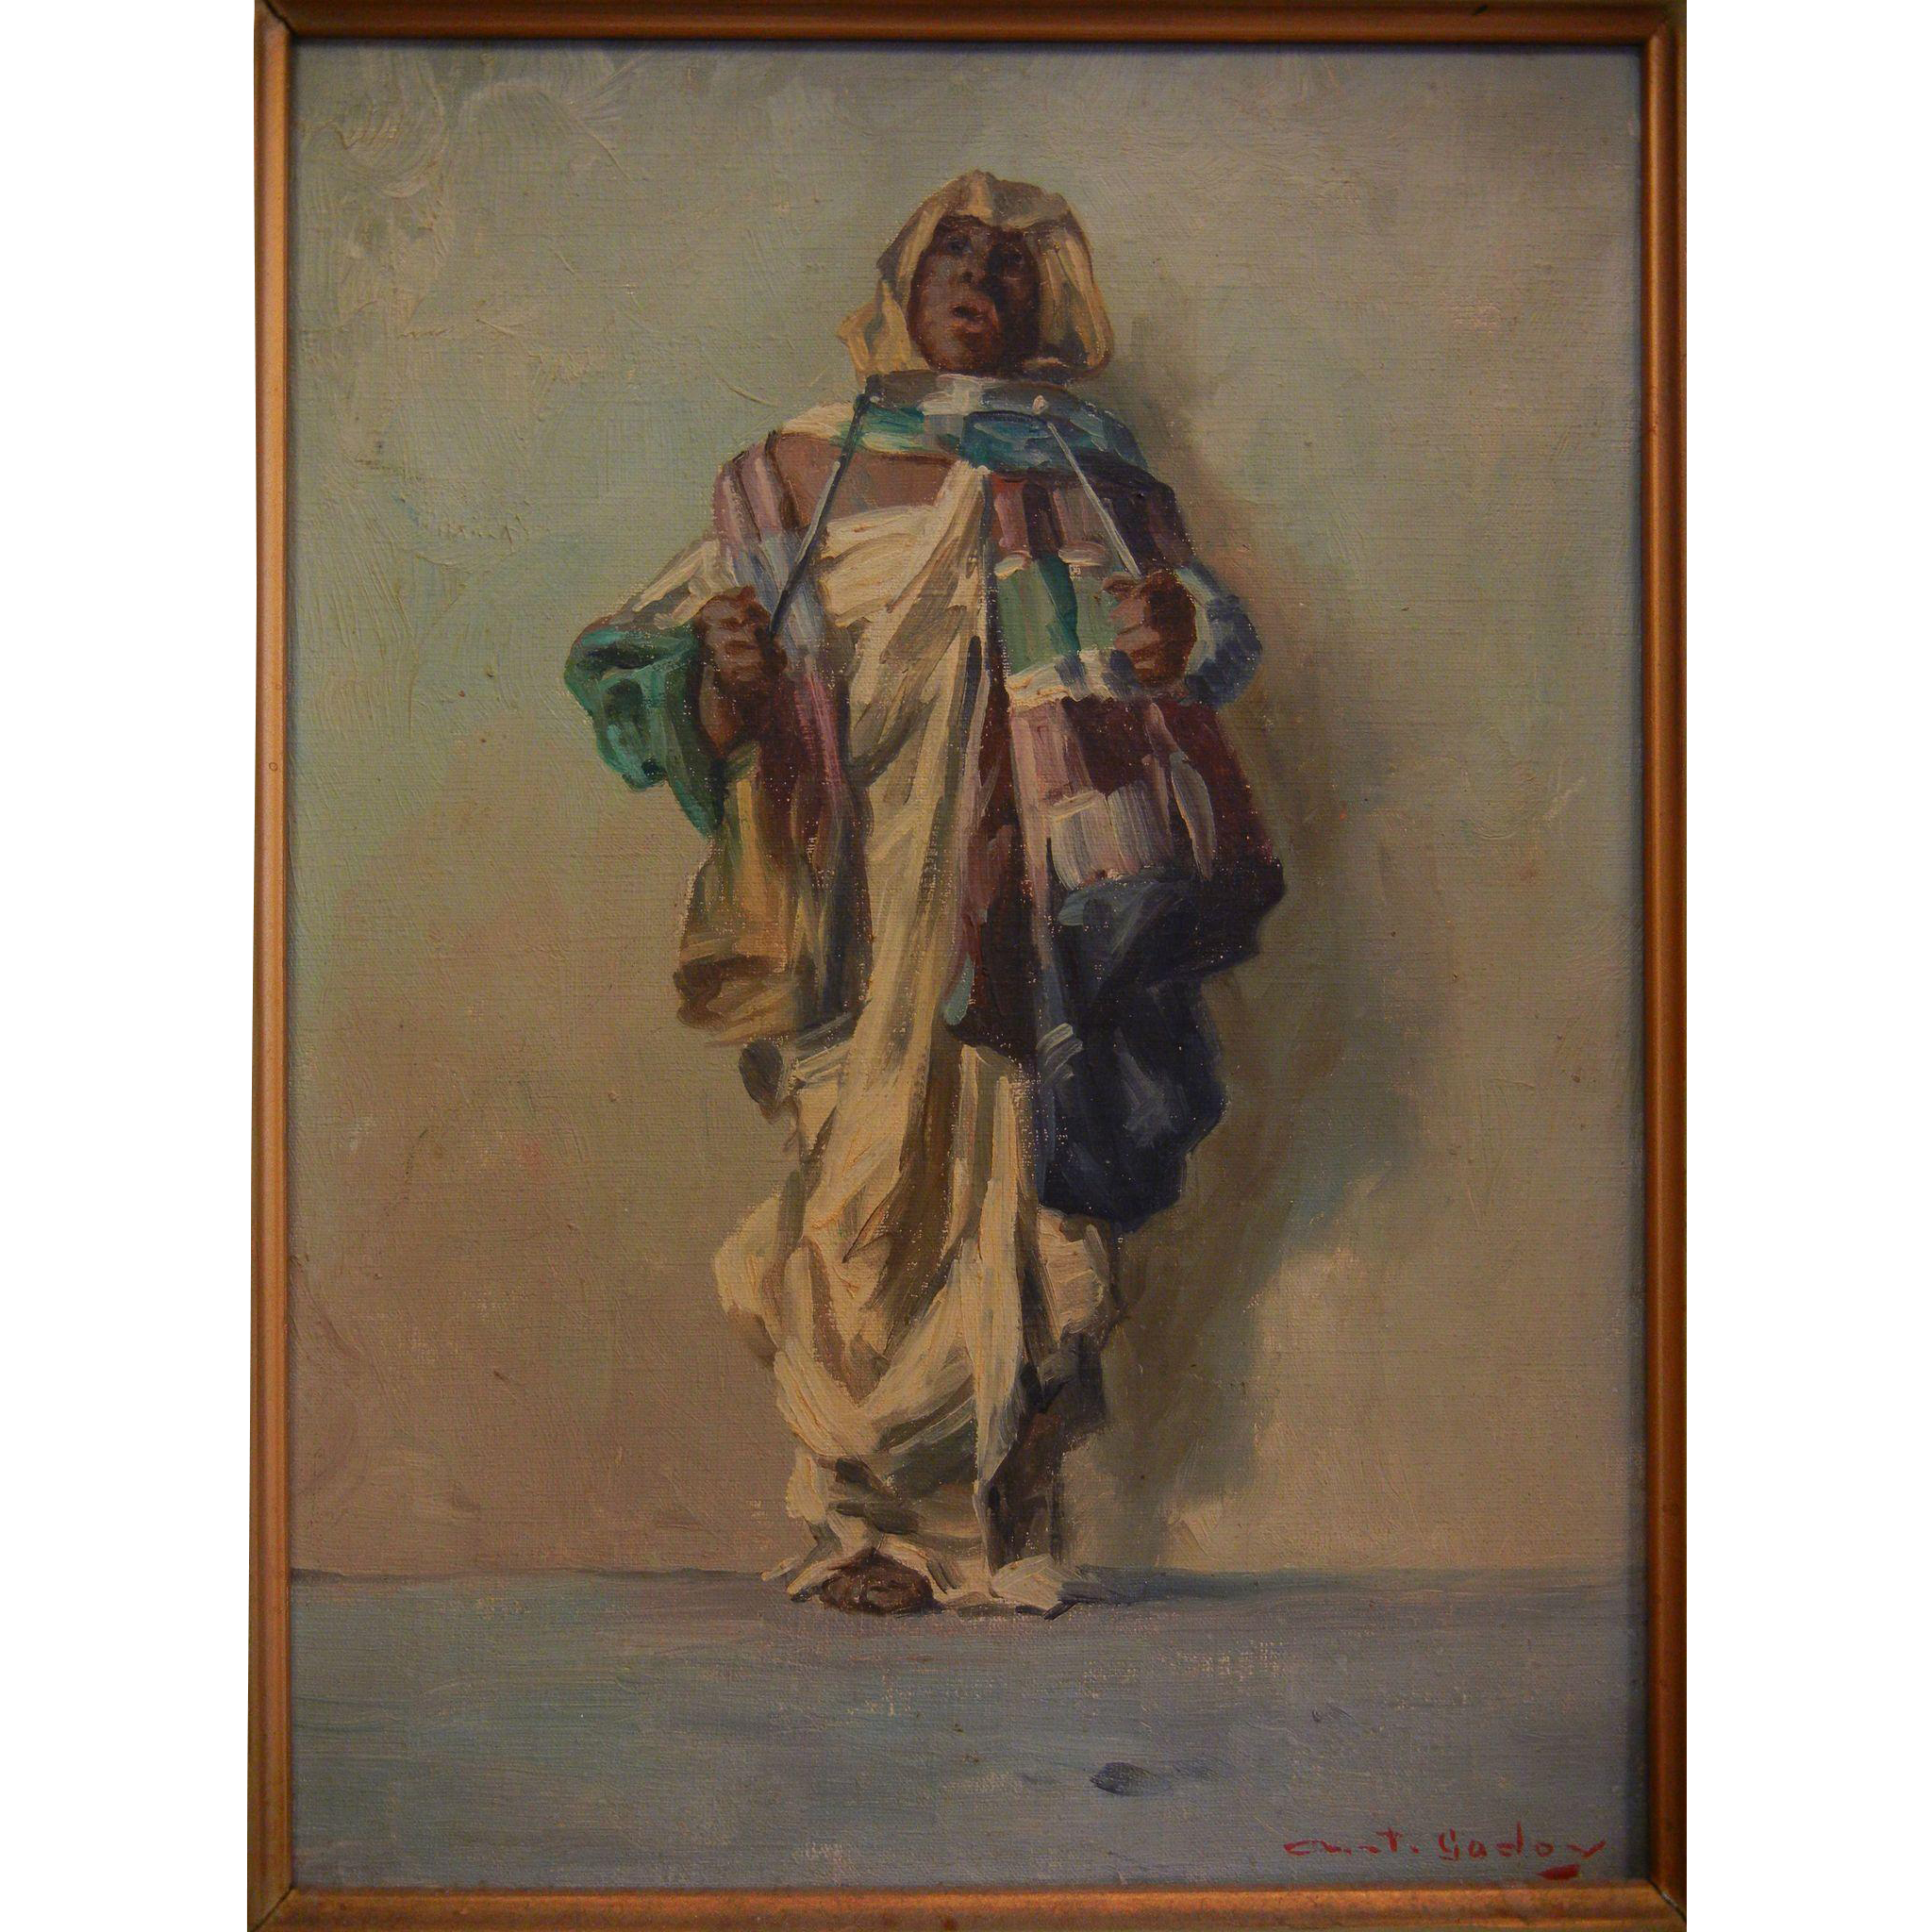 Antique Painting With Arab Man in Tribal Clothing